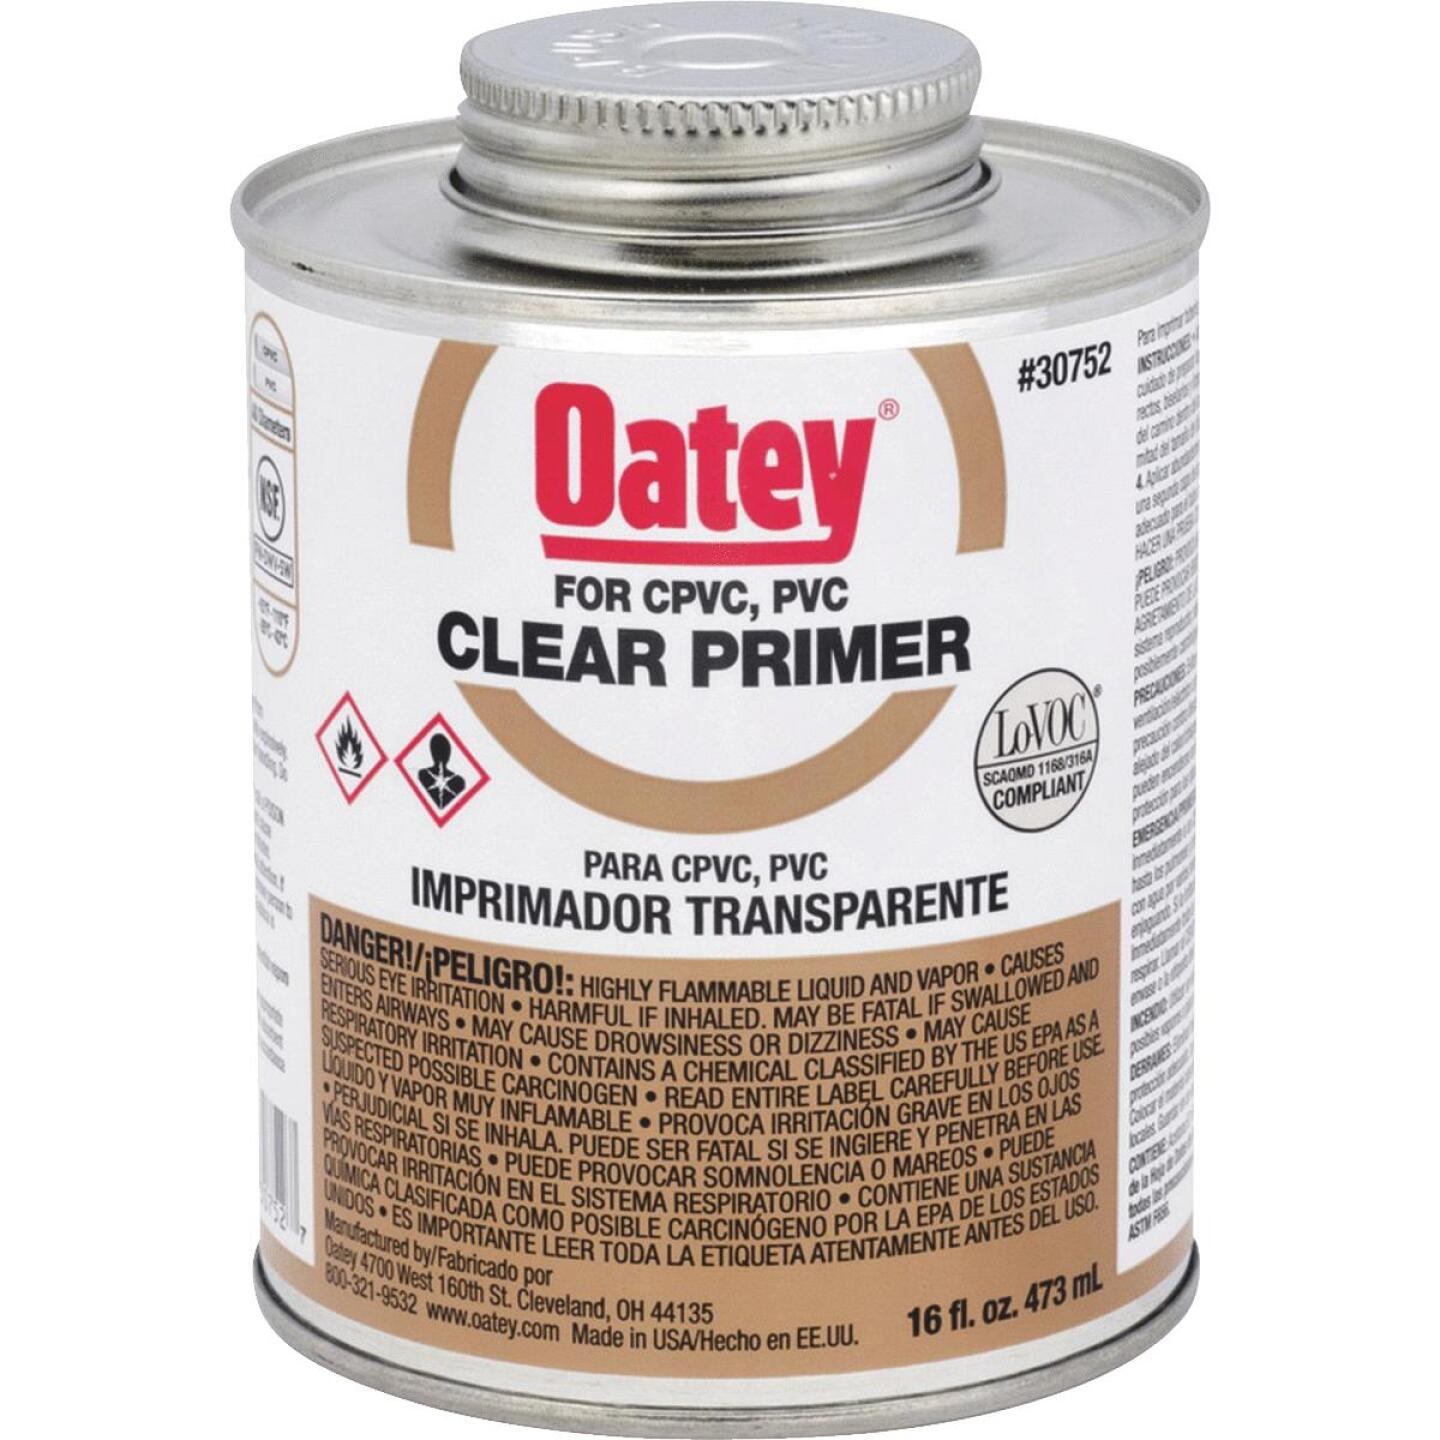 Oatey 16 Oz. Clear Pipe and Fitting Primer for PVC/CPVC  Image 1